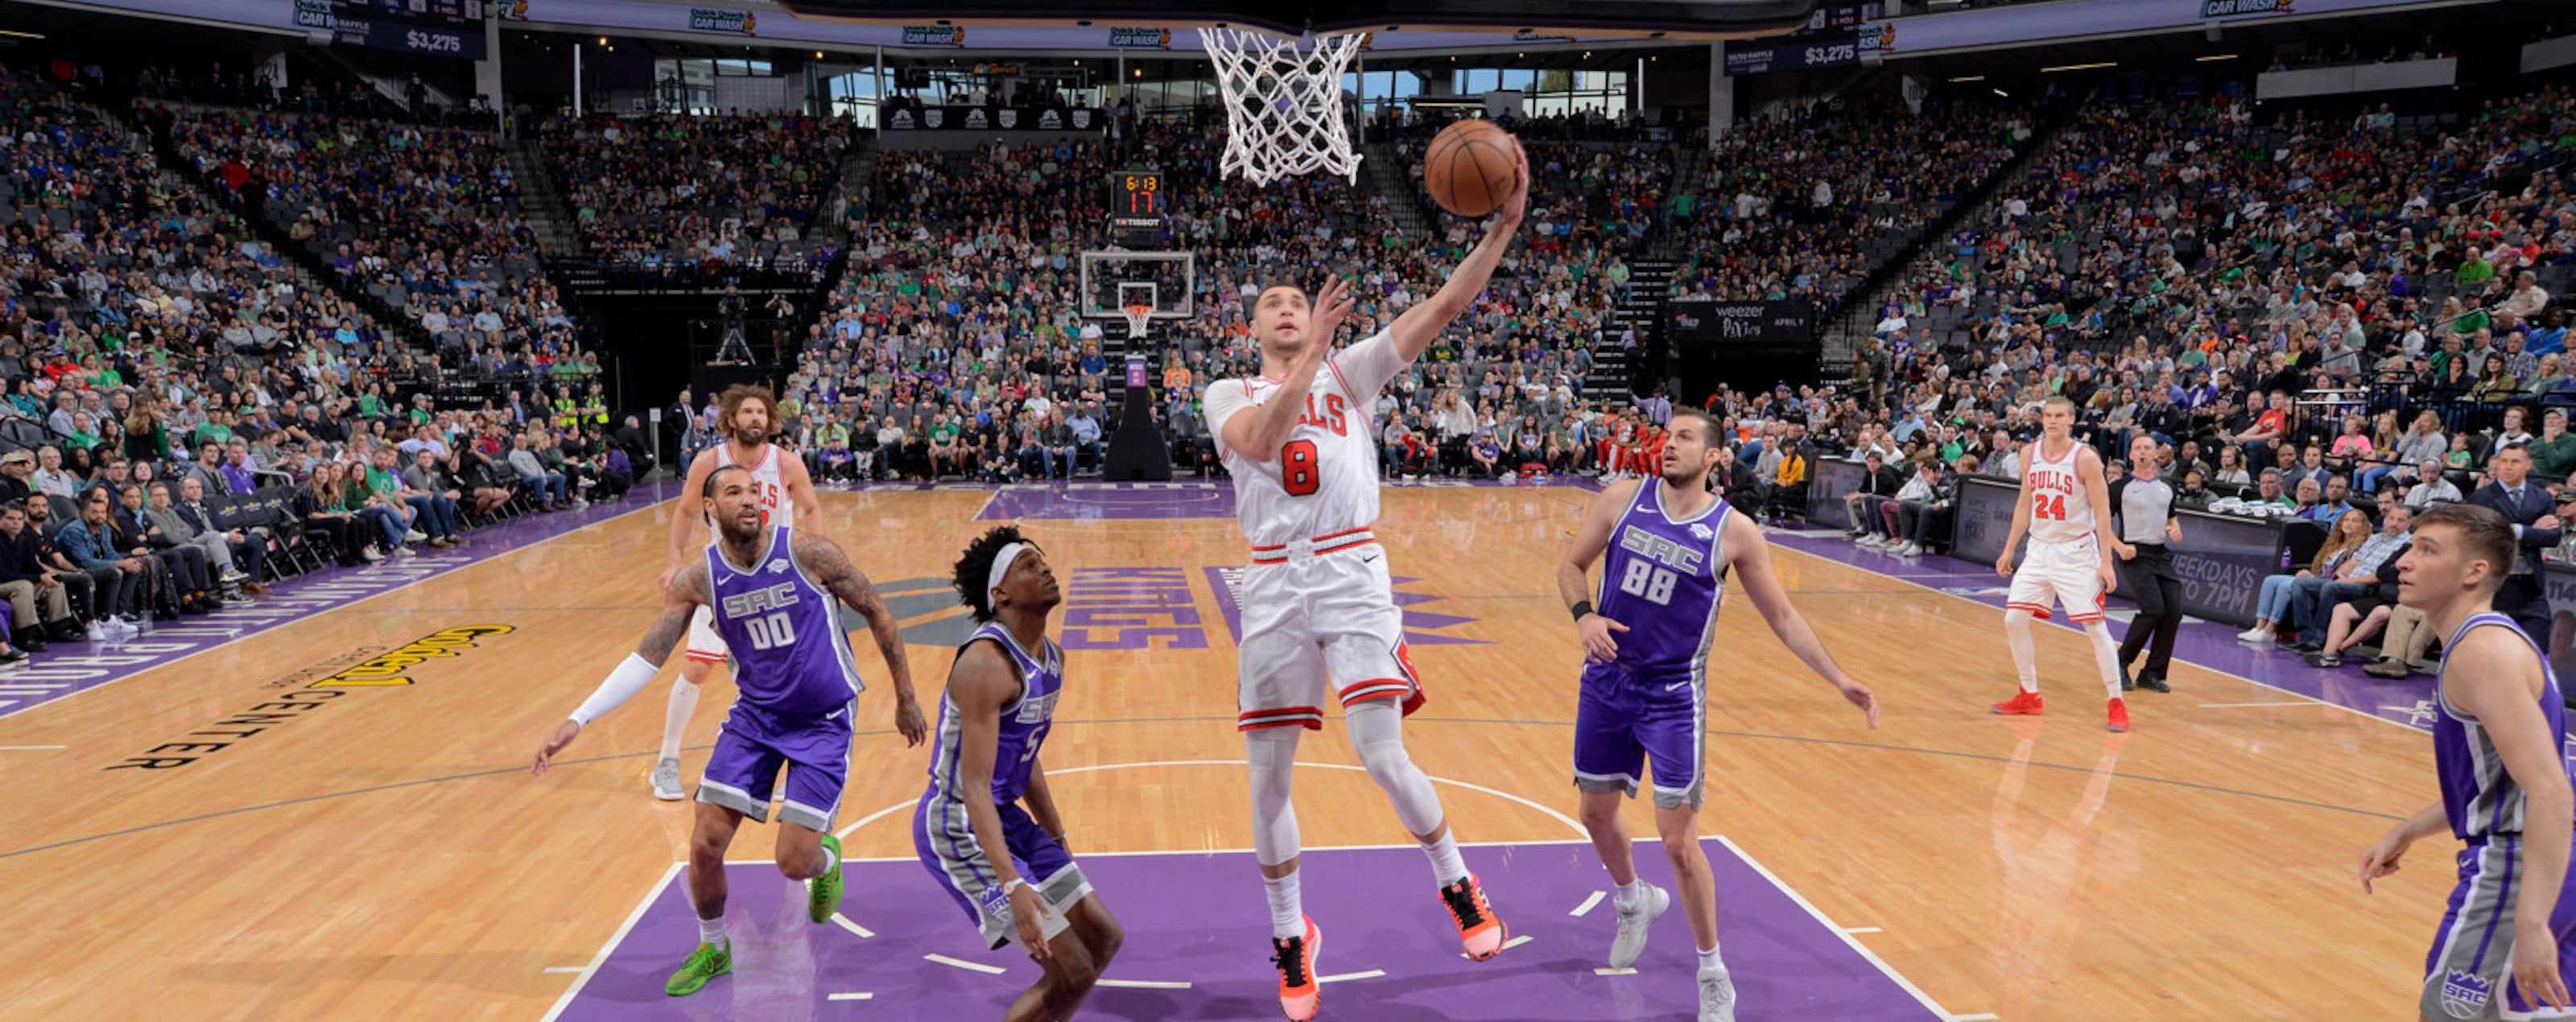 Zach LaVine #8 of the Chicago Bulls shoots the ball against the Sacramento Kings on March 17, 2019 at Golden 1 Center in Sacramento, California.